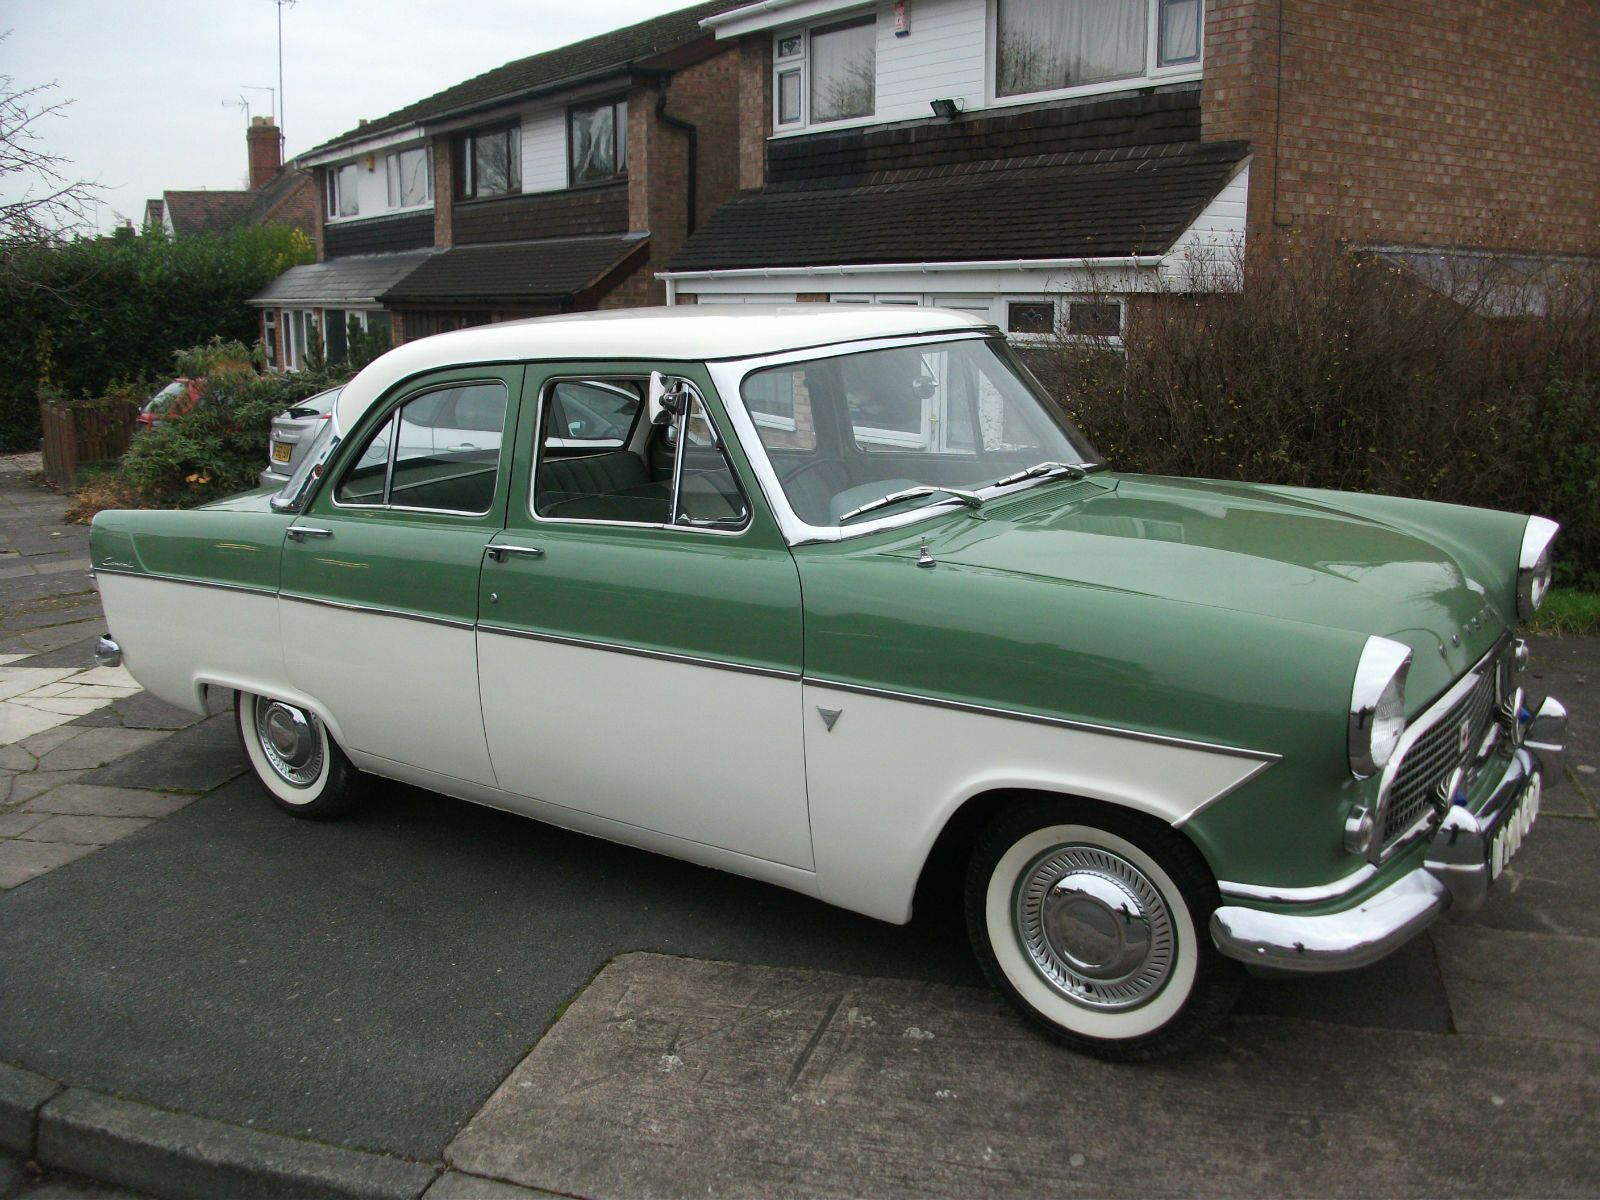 1959 Ford Consul Mk 2 Classic Cars Ford Classic Cars Classic